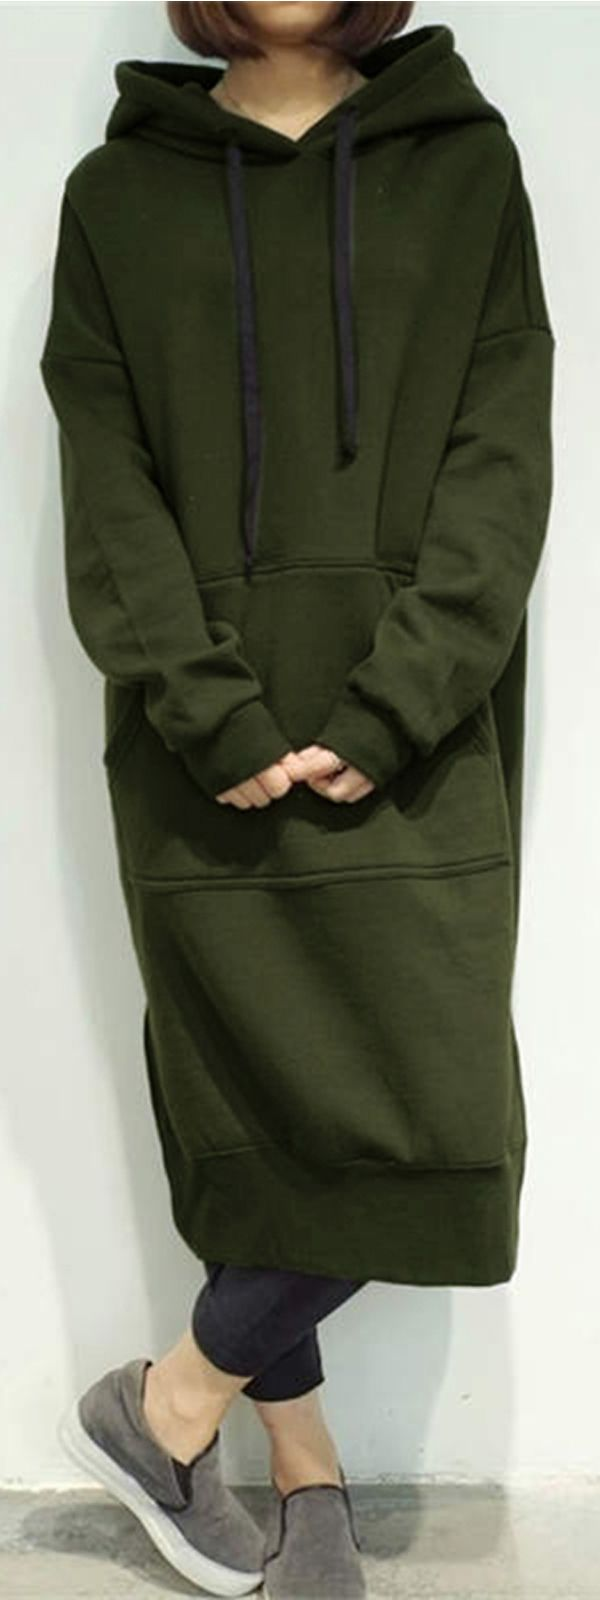 Us free shipping size sxl color army green black